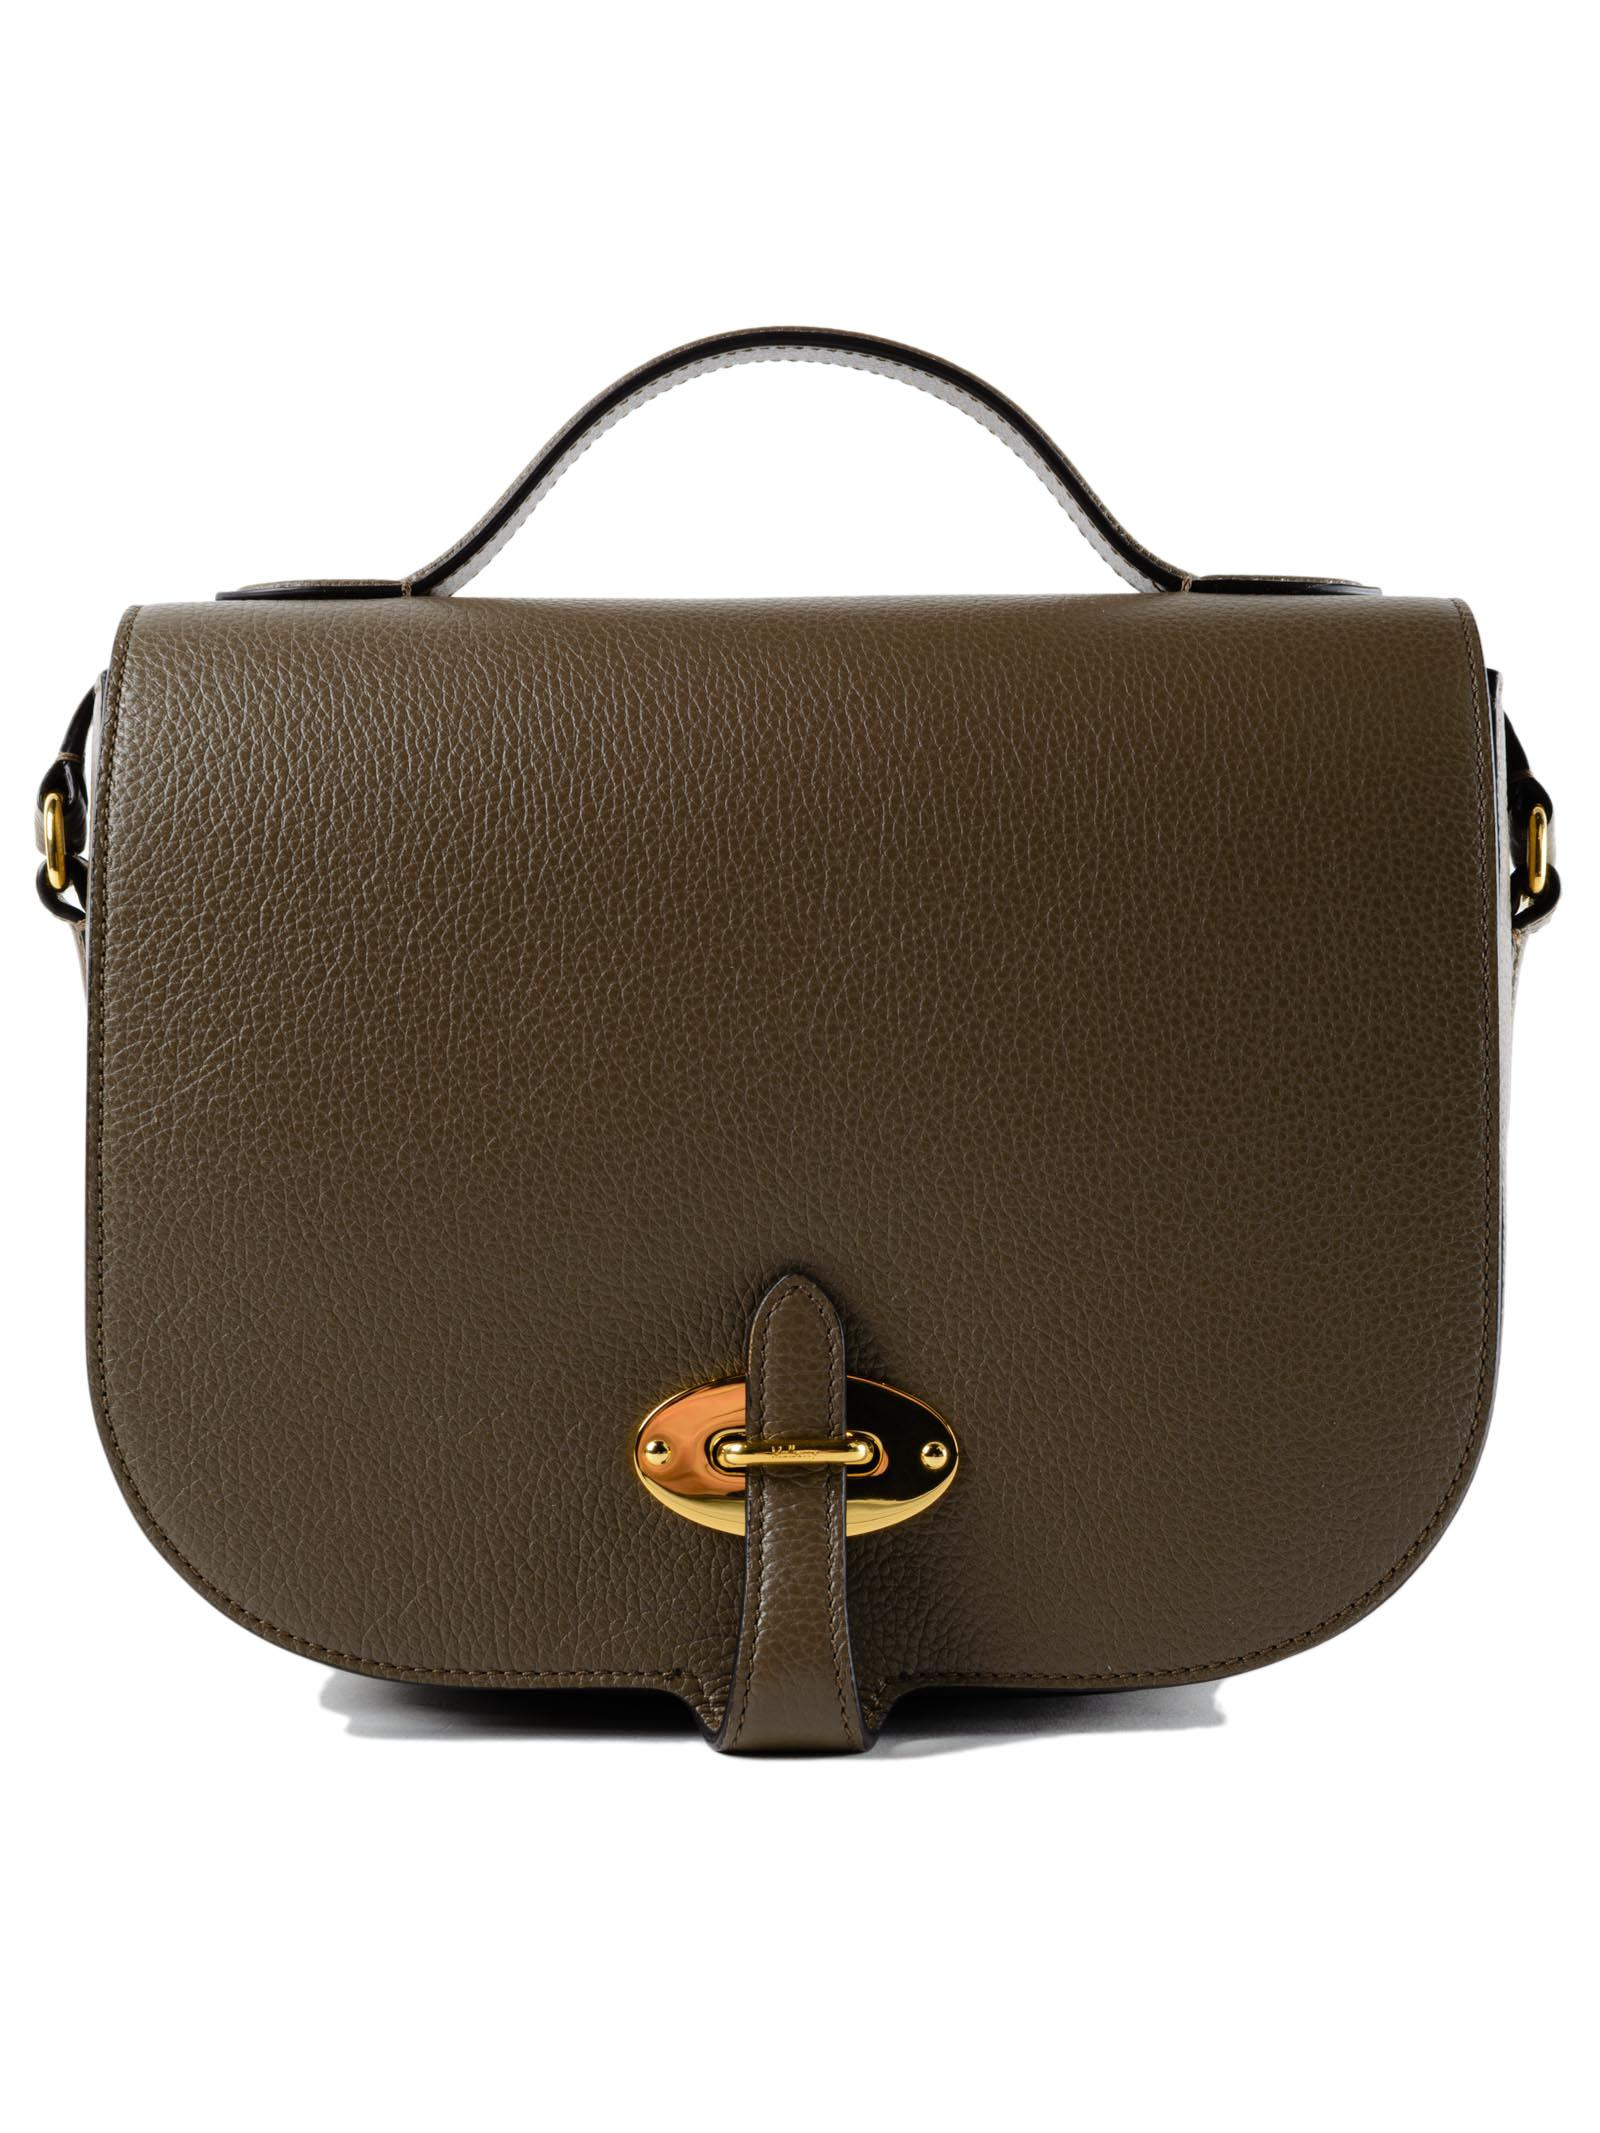 574b0aa0c98 Mulberry Tenby Small Bag - Lyst